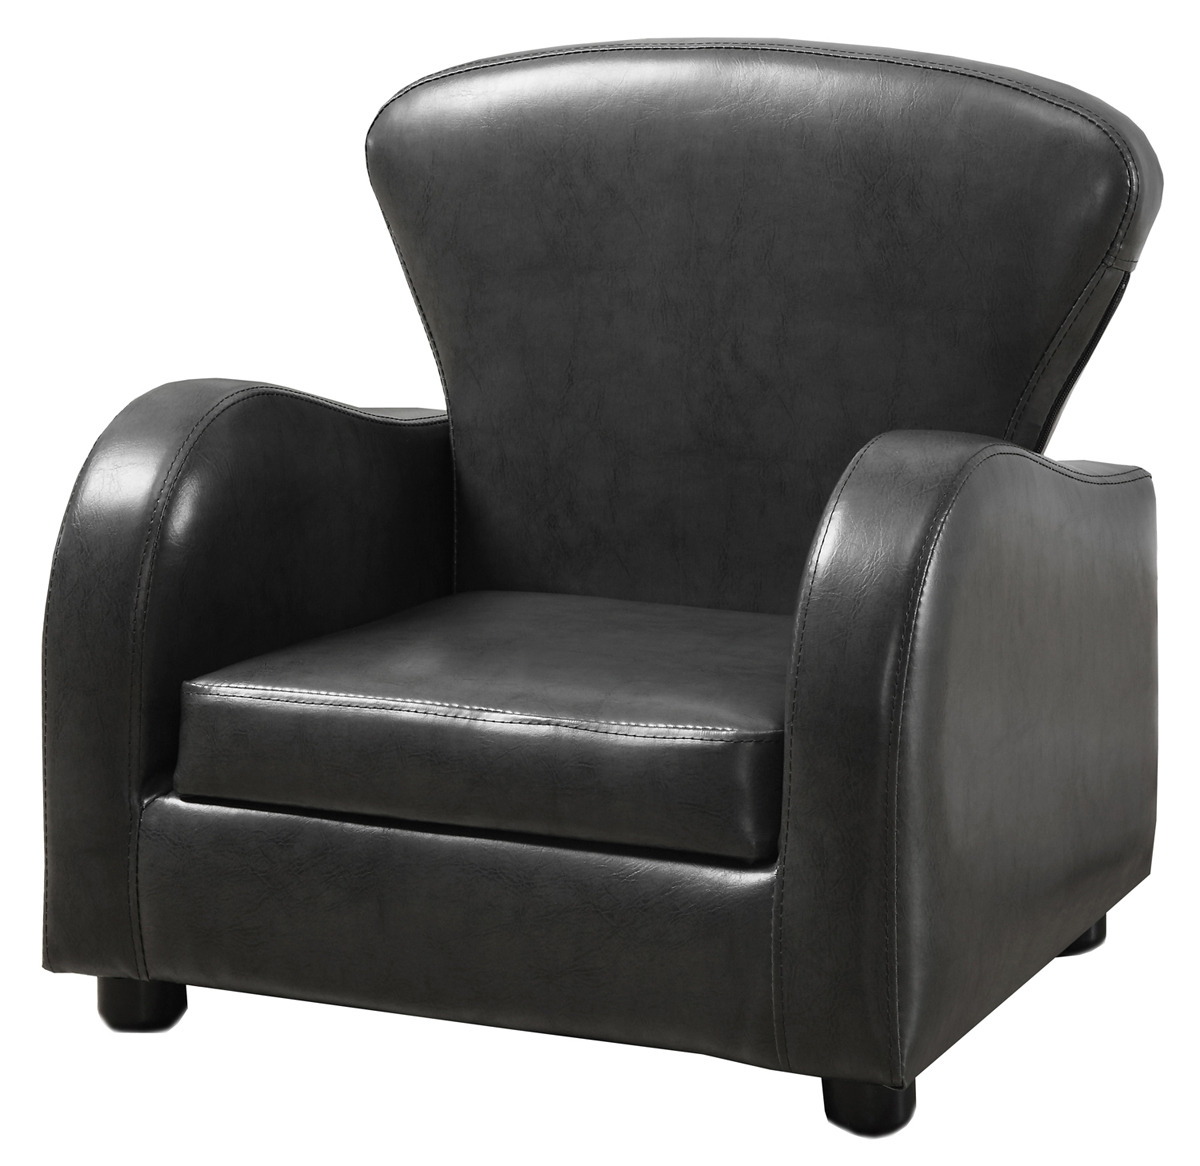 Juvenile Chair - Charcoal Grey Leather-Look